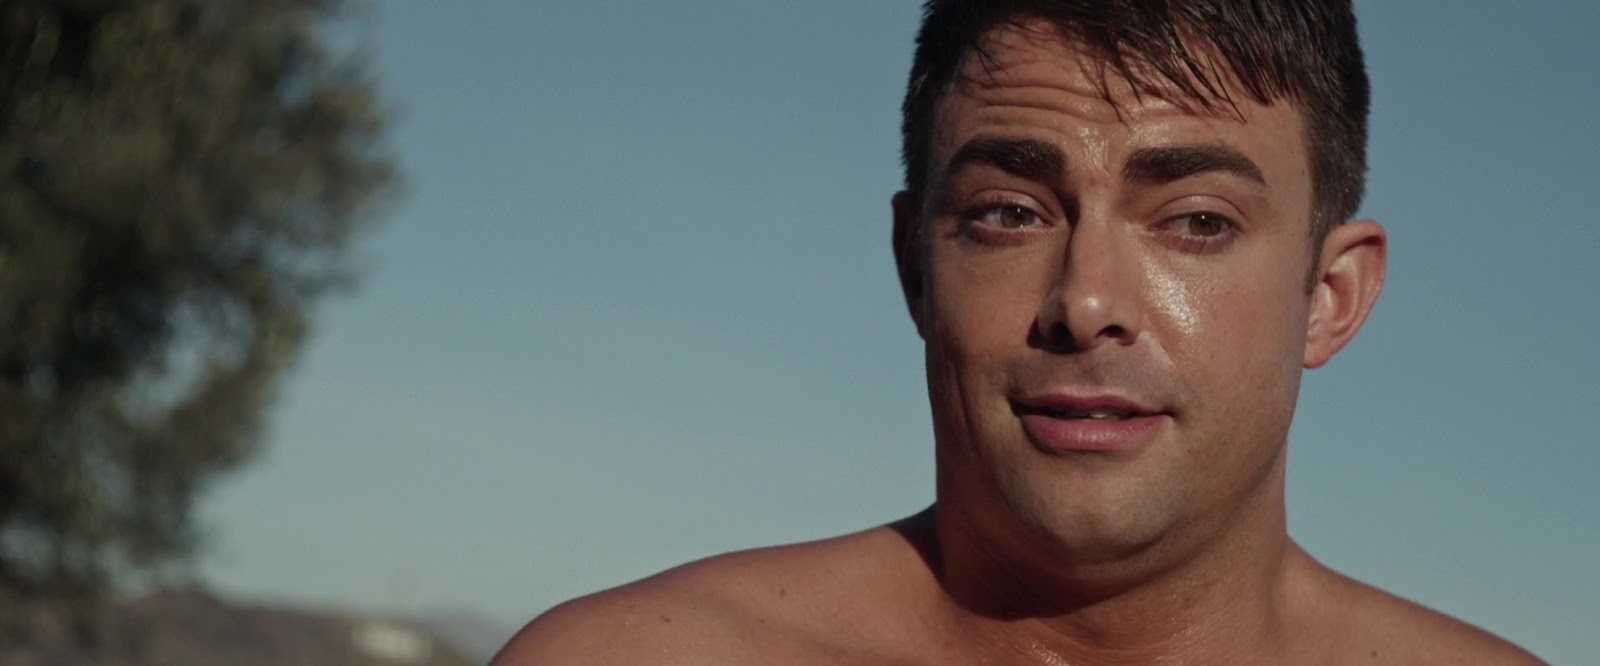 ausCAPS: Jonathan Bennett shirtless in The Haunting Of